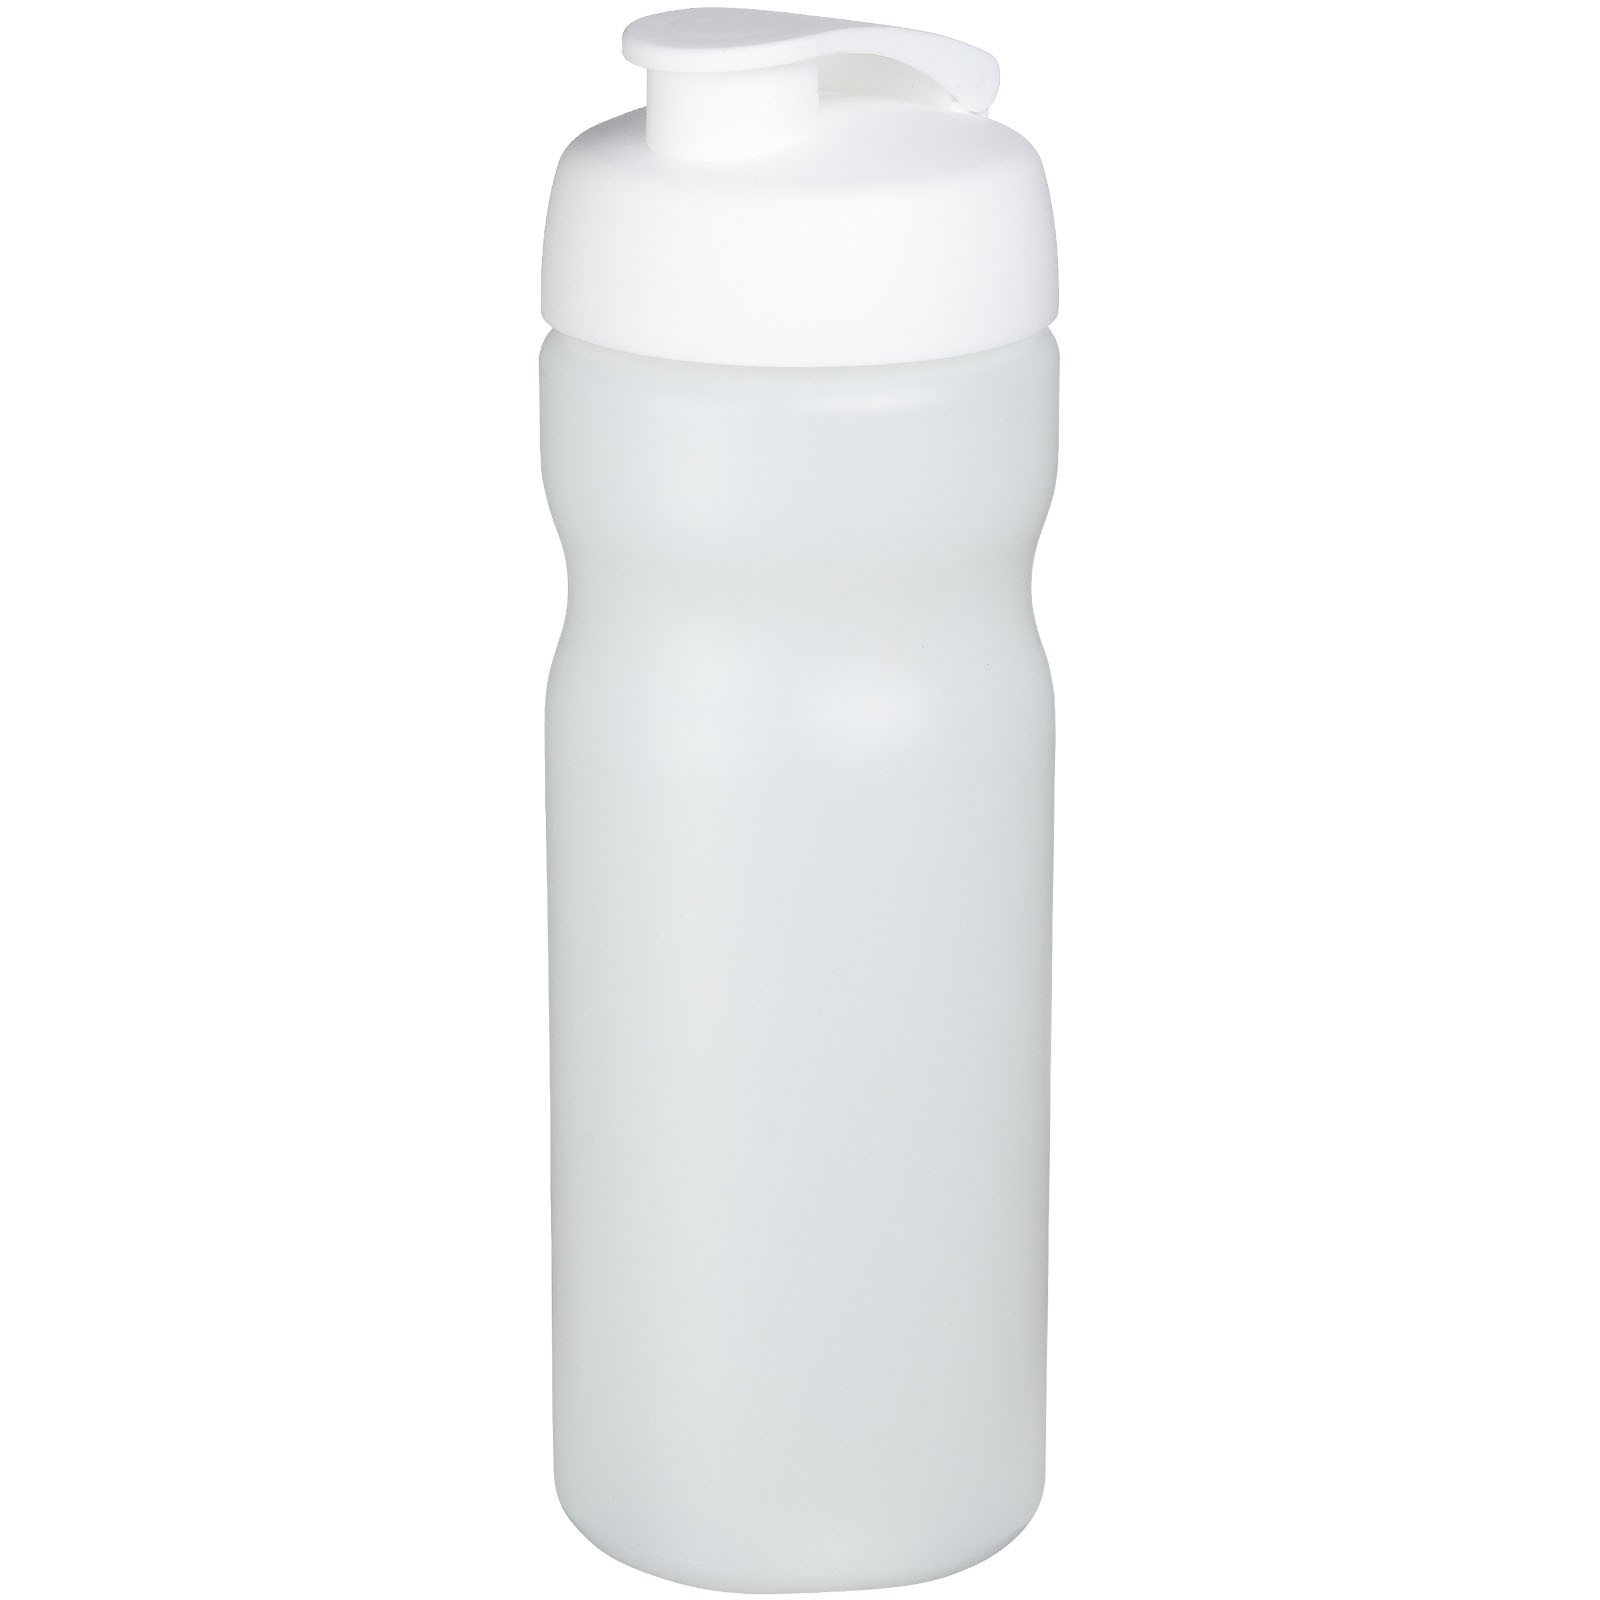 Baseline® Plus 650 ml flip lid sport bottle - Transparent / White